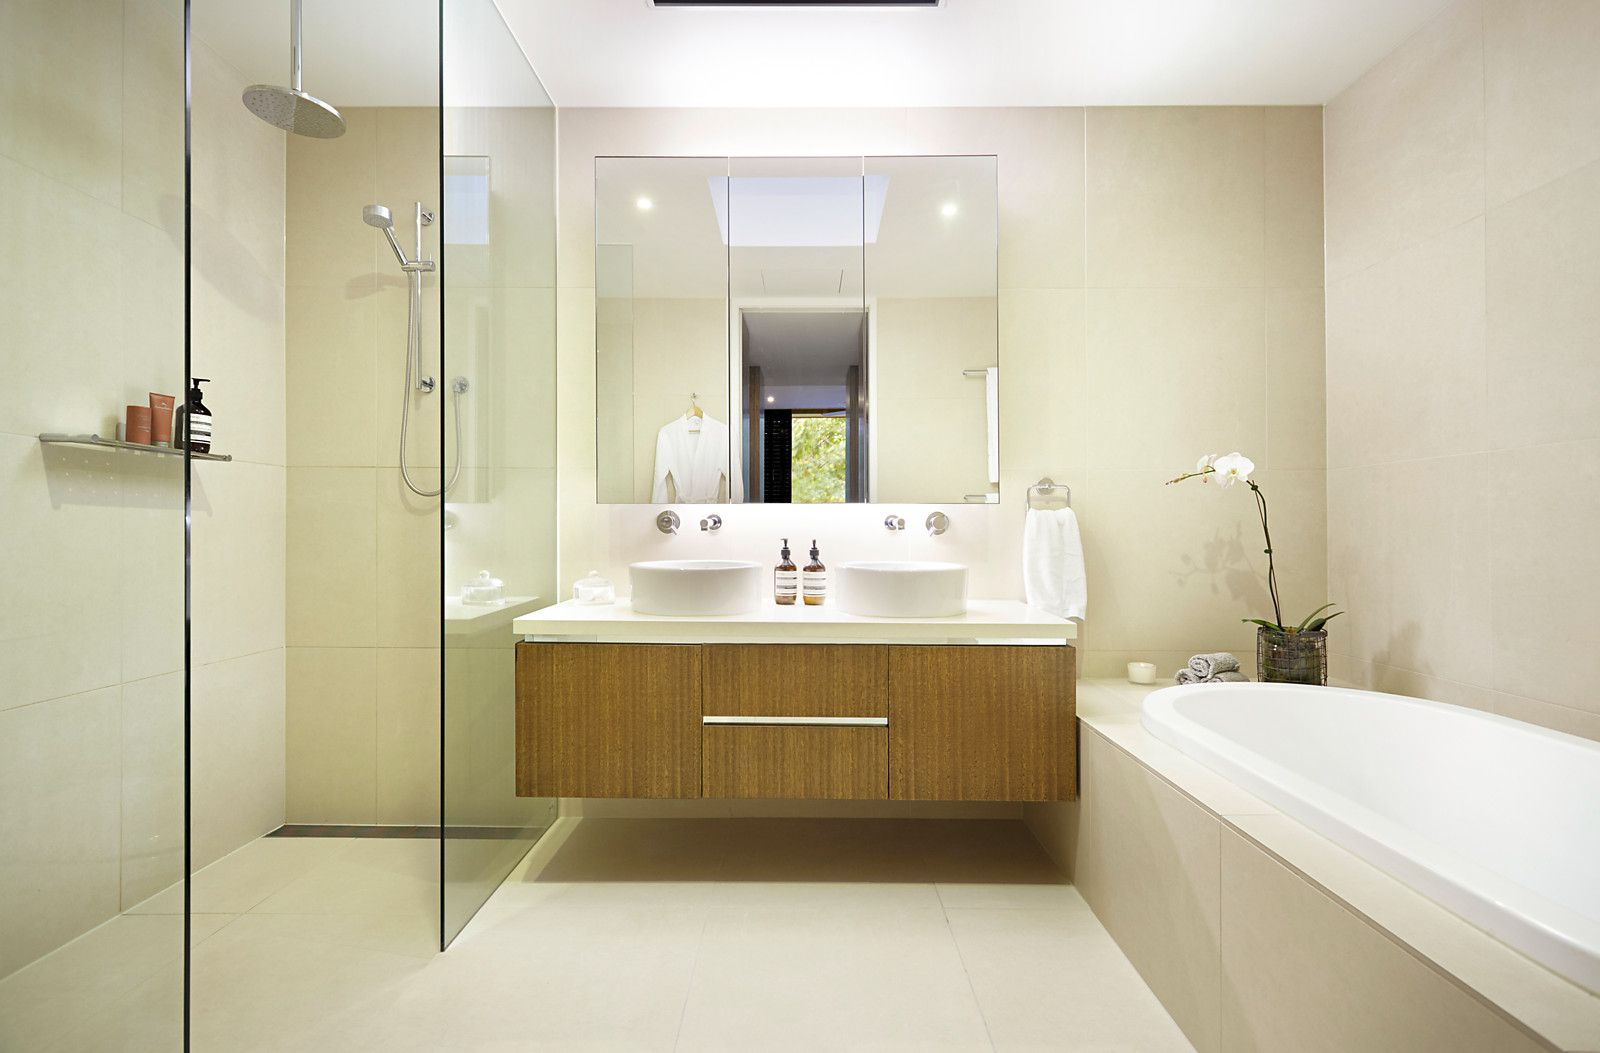 Good Renovating Wet Areas: What Can You Do Yourself?